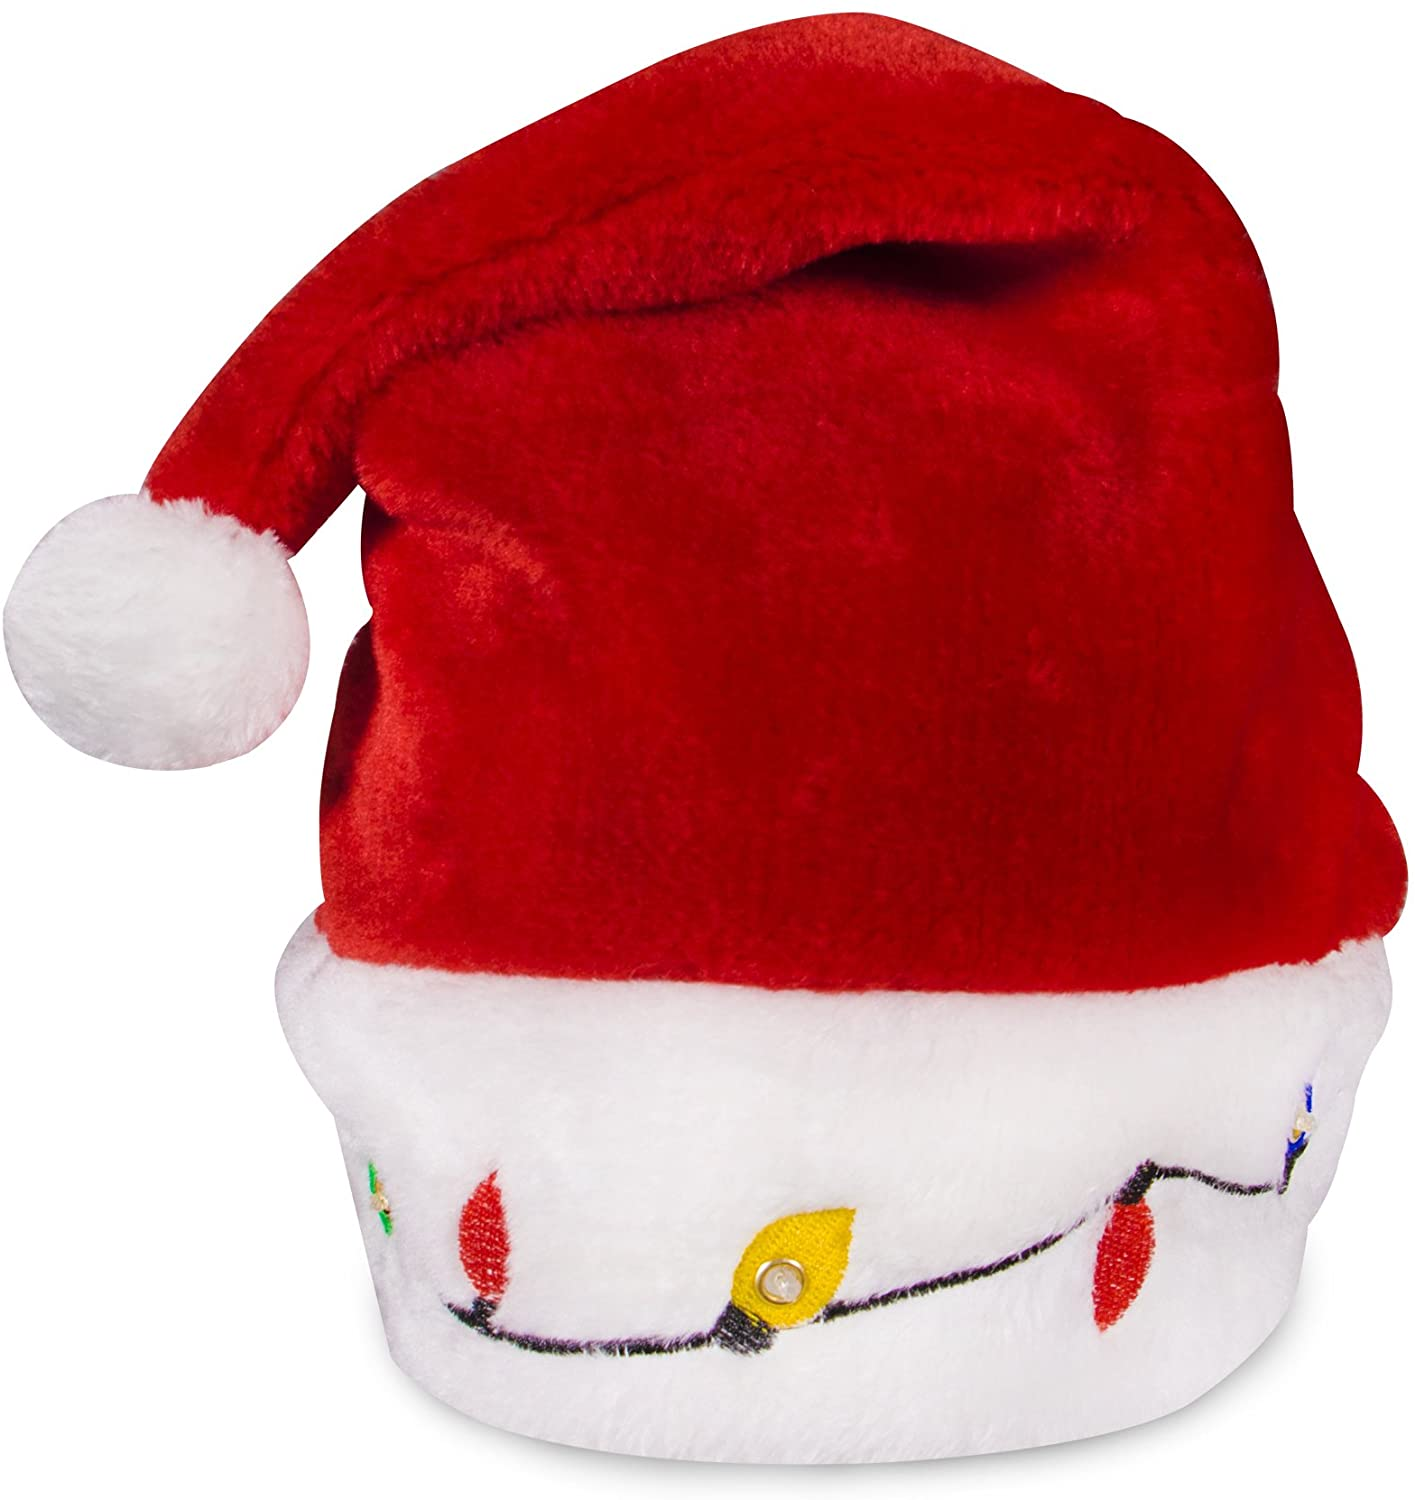 LED Light-up Christmas Bulb Plush Santa Hat for Adults and Kids Red